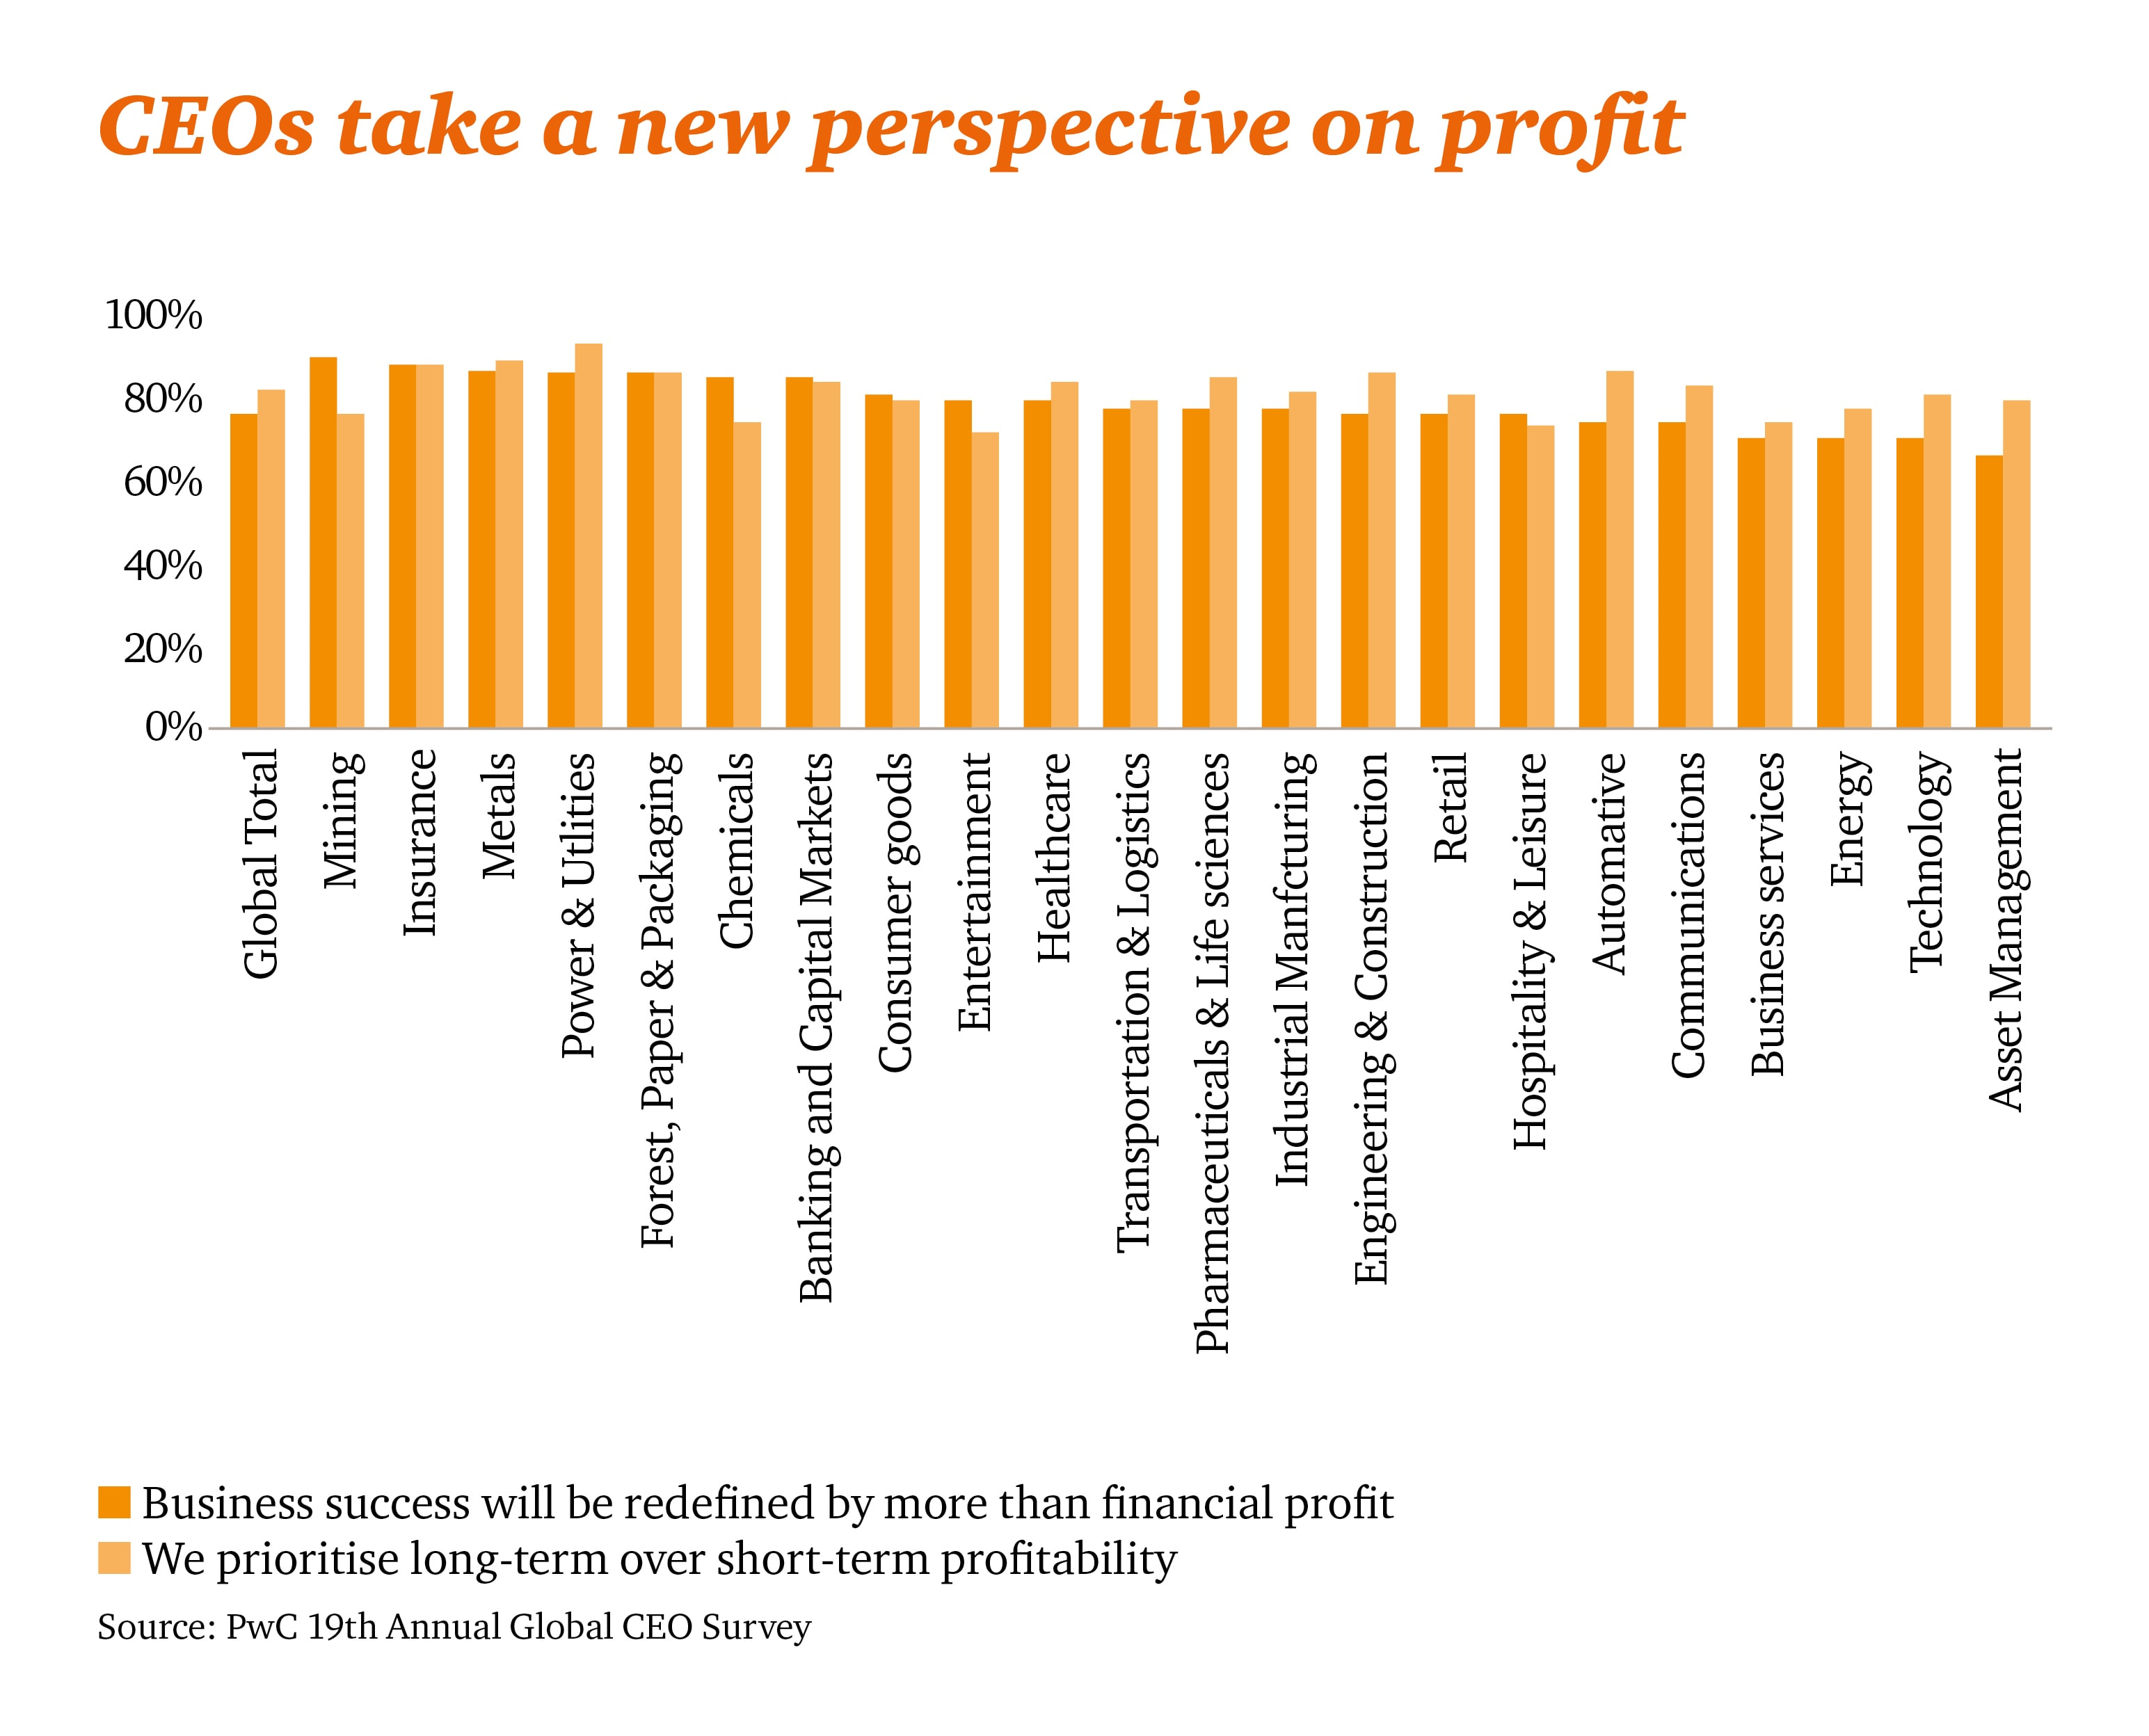 CEOs taking a new perspective on profit